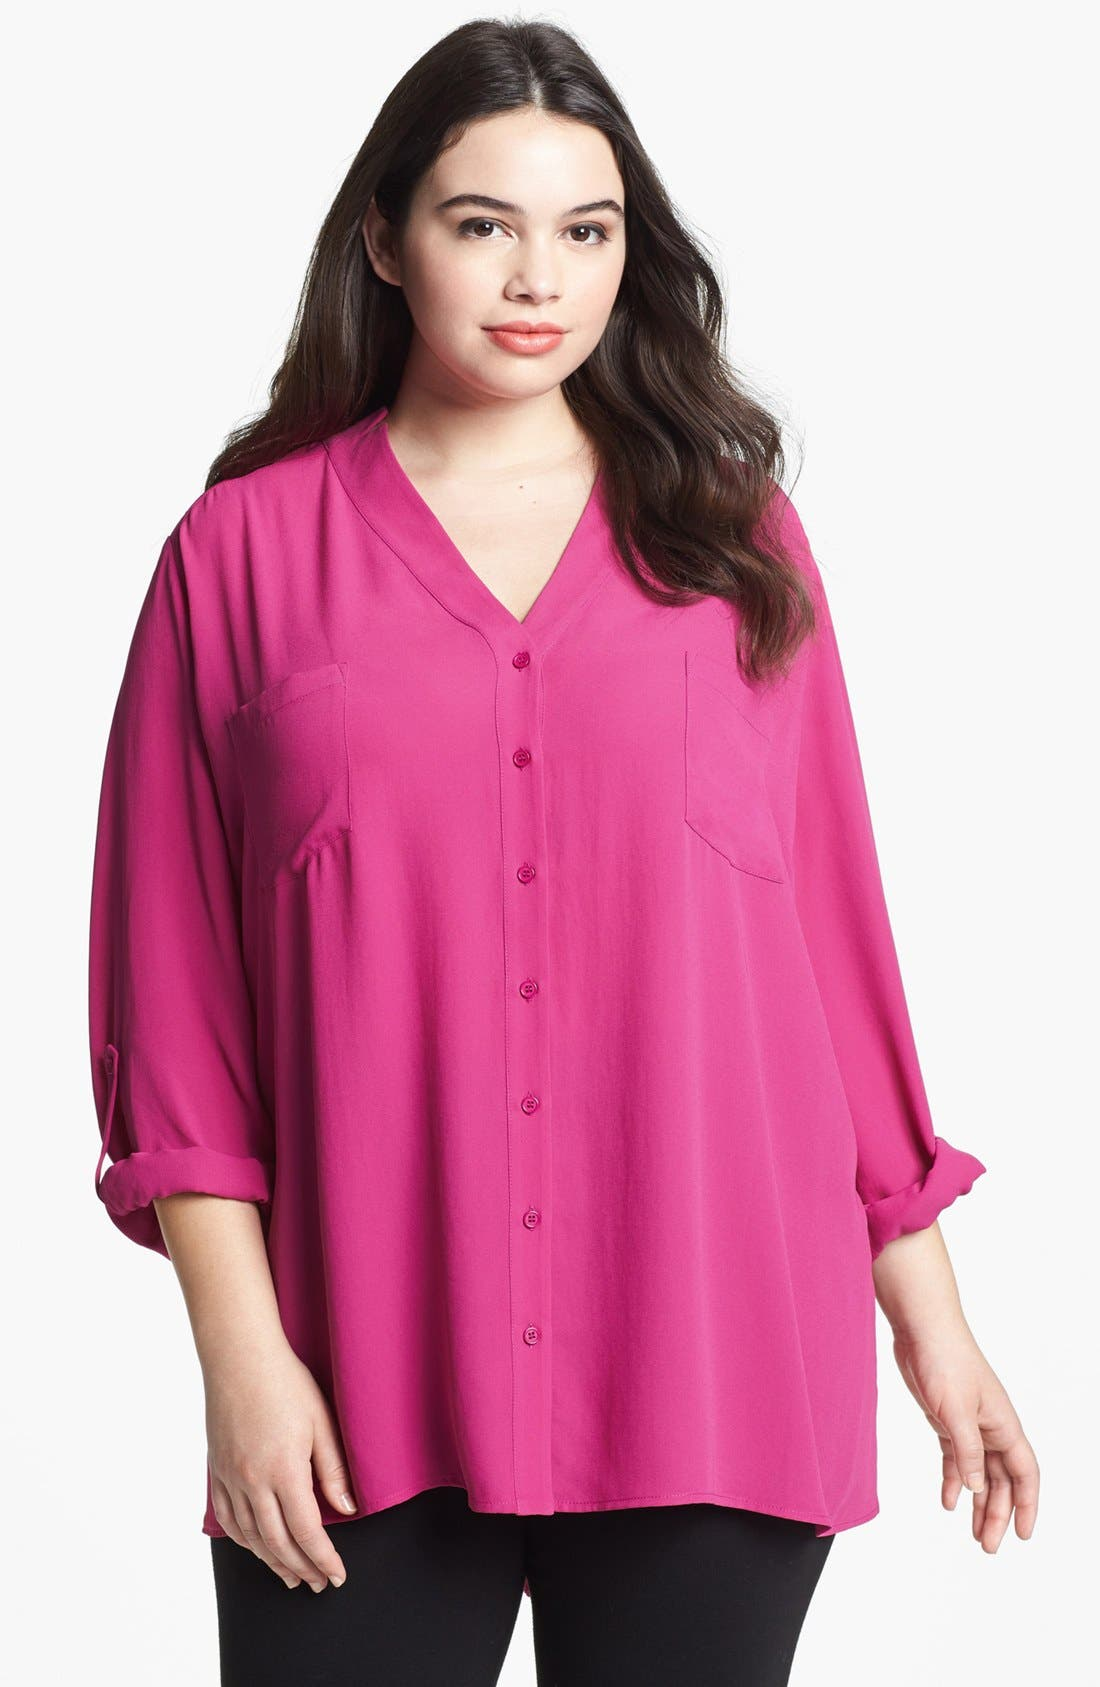 Alternate Image 1 Selected - Pleione V-Neck Blouse (Plus Size)